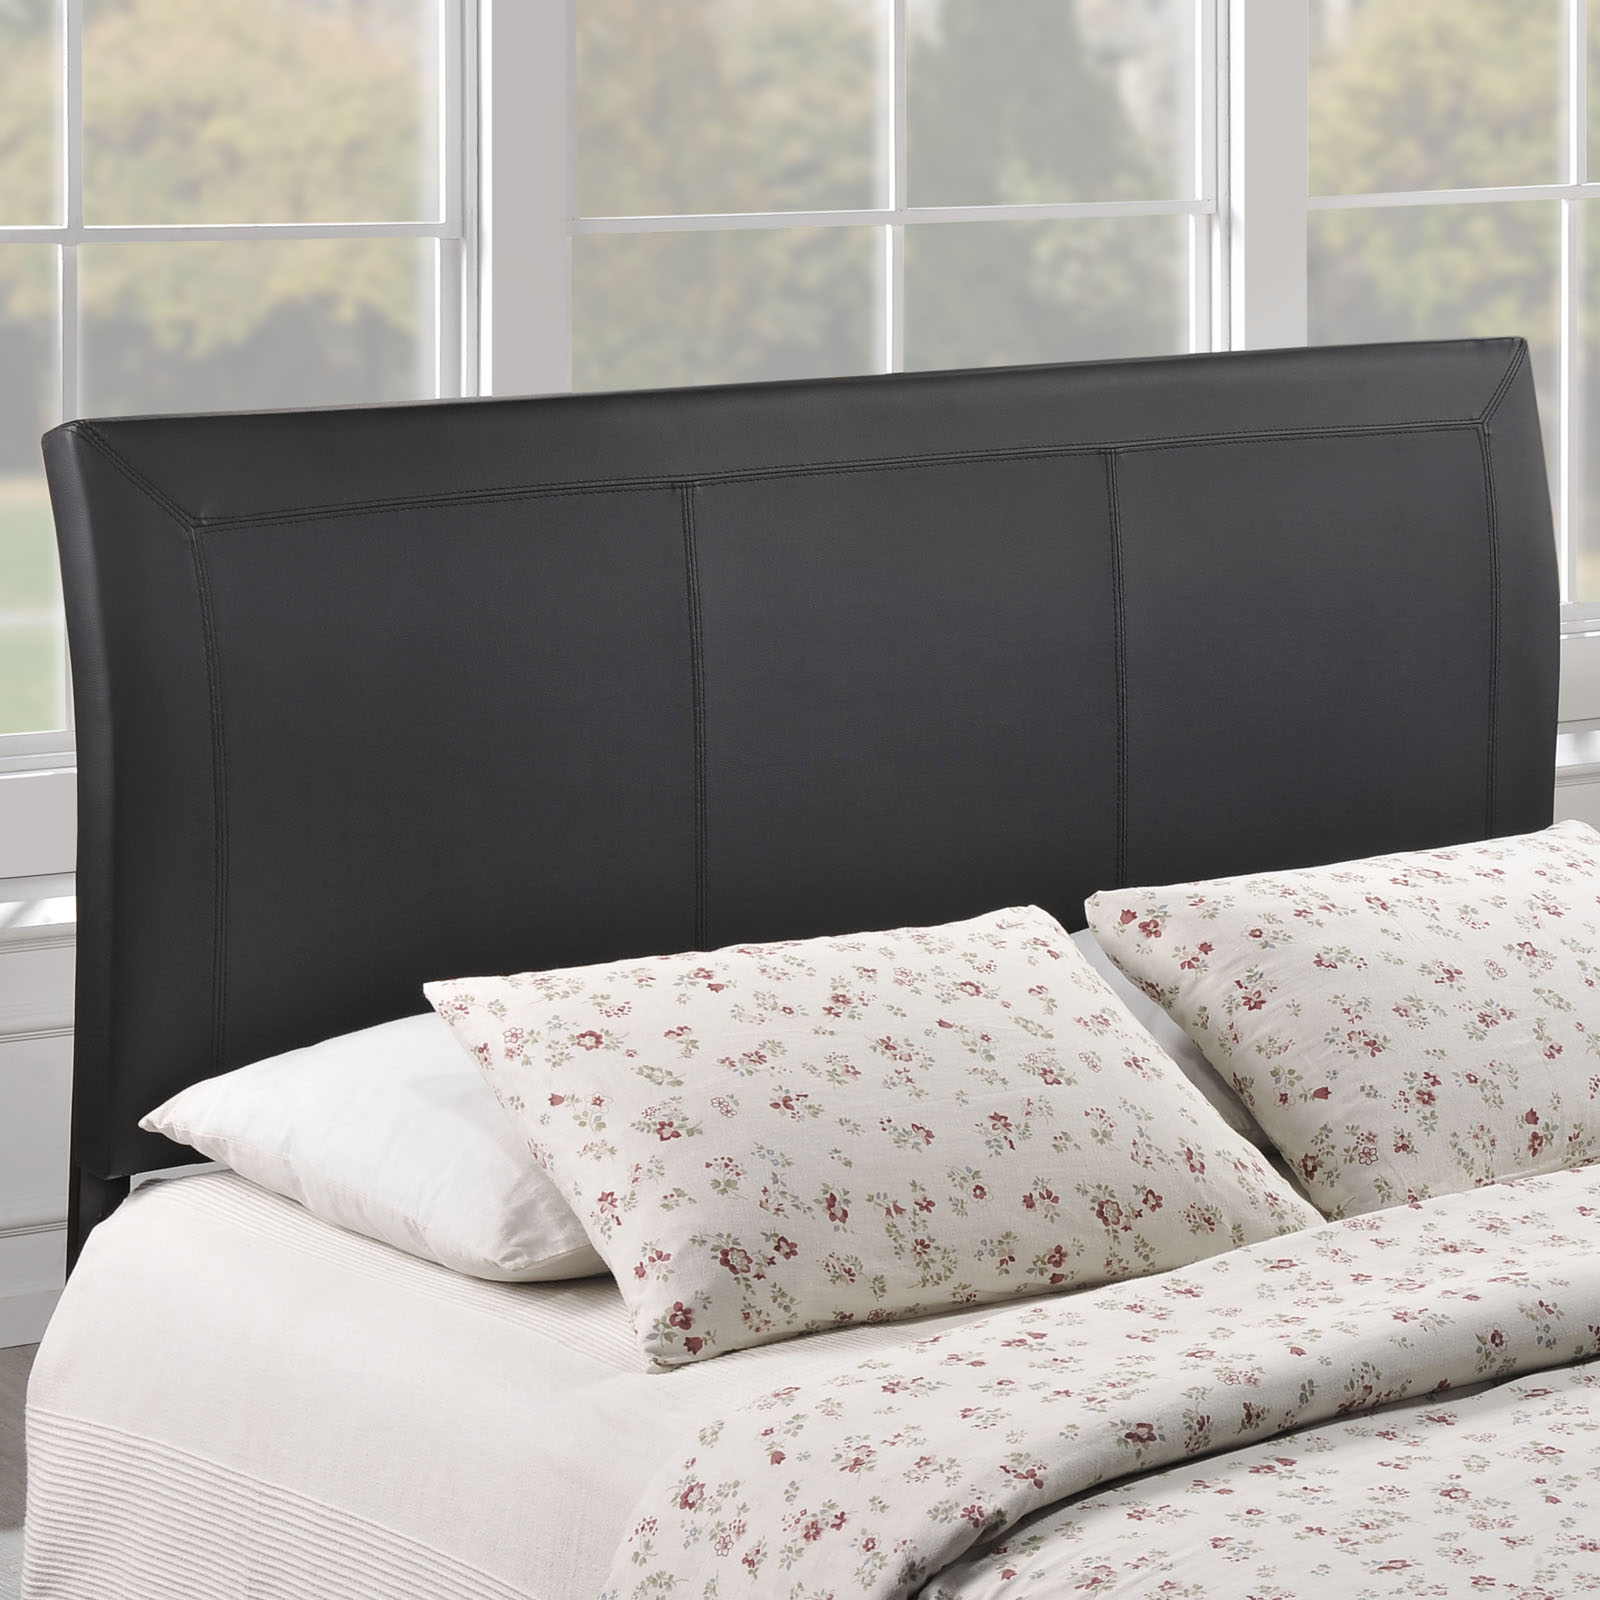 Modway Isabella Upholstered Headboard